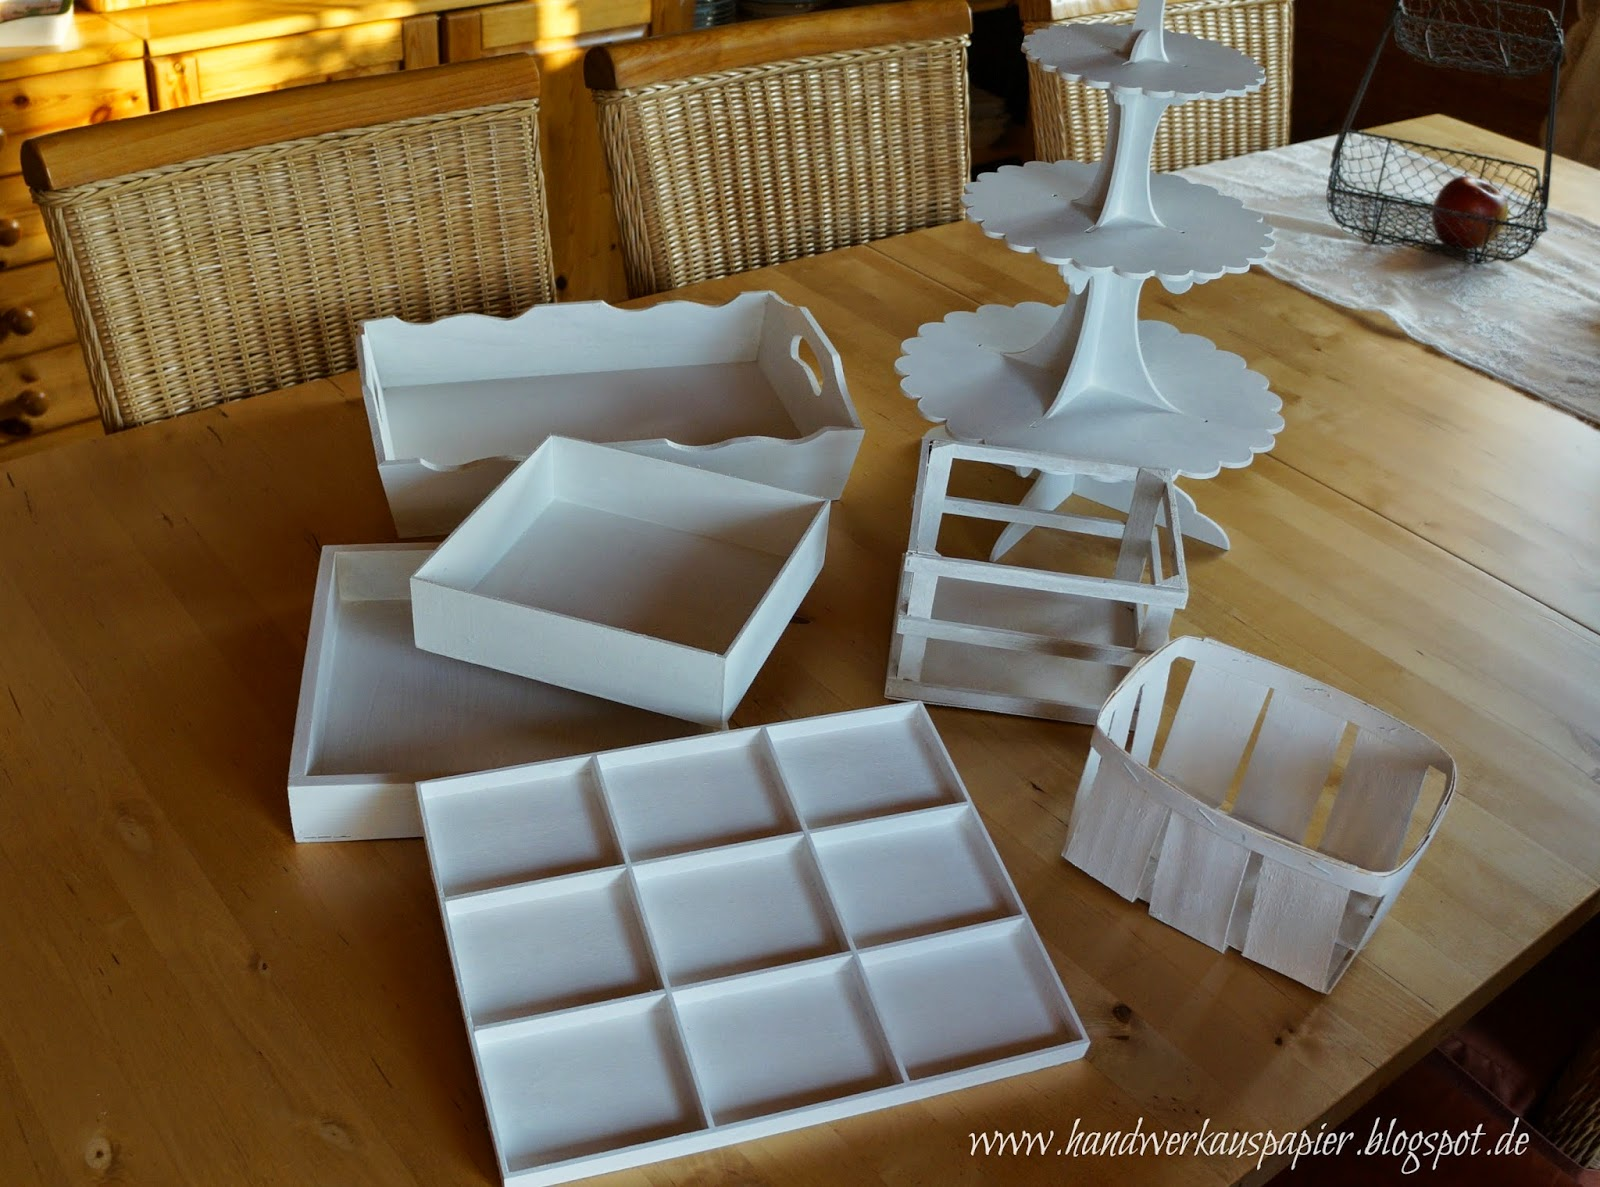 handwerk aus papier heute mal gepinselt. Black Bedroom Furniture Sets. Home Design Ideas